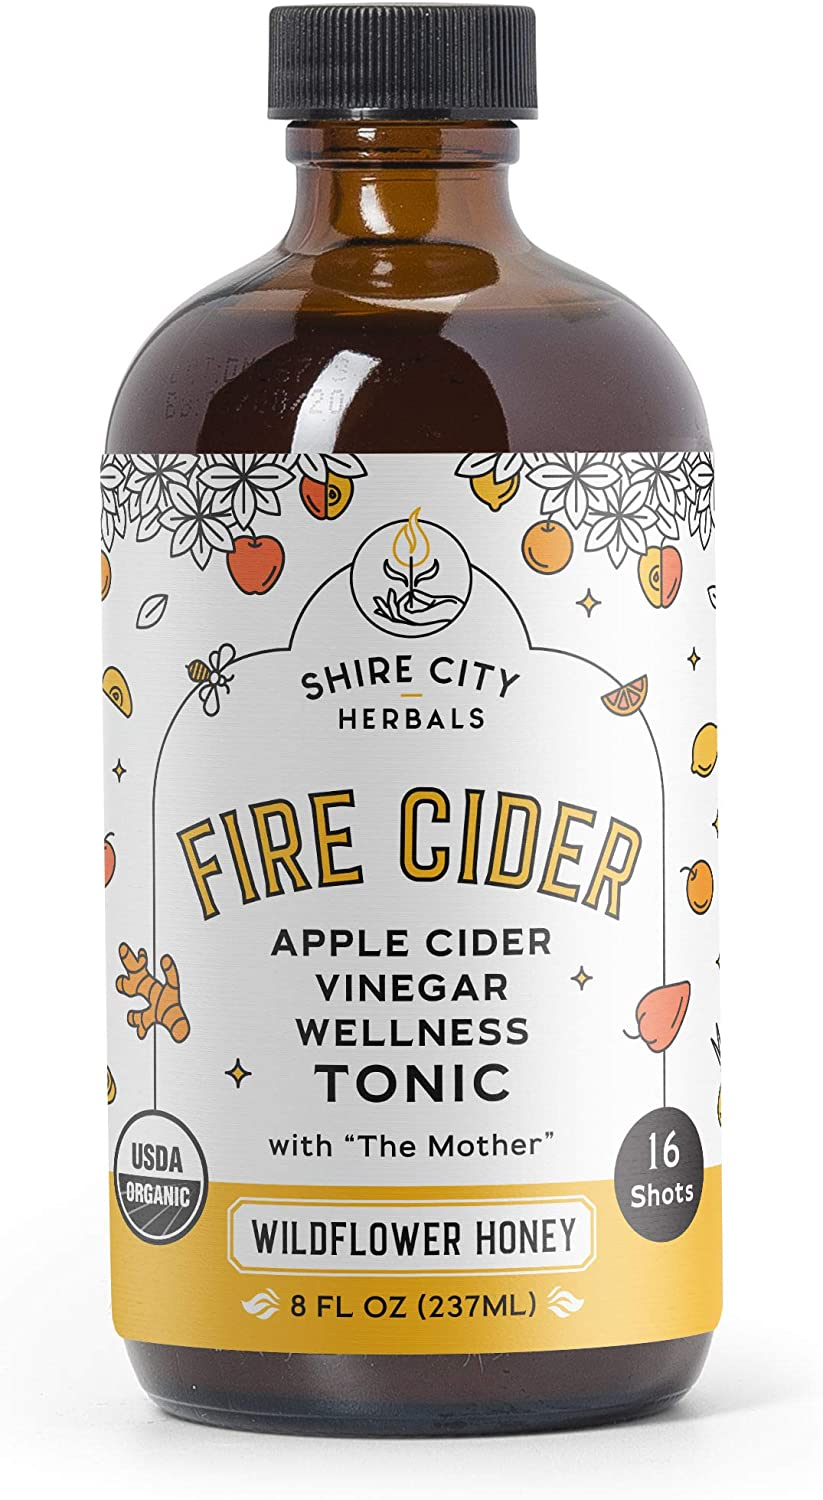 Fire Cider, Tonic, 8 oz, Wildflower Honey flavor, 16 Daily Shots, Apple Cider Vinegar, Whole, Raw, Organic, Not Heat Processed, Not Pasteurized, Not Diluted, Paleo, Keto, Whole 30.